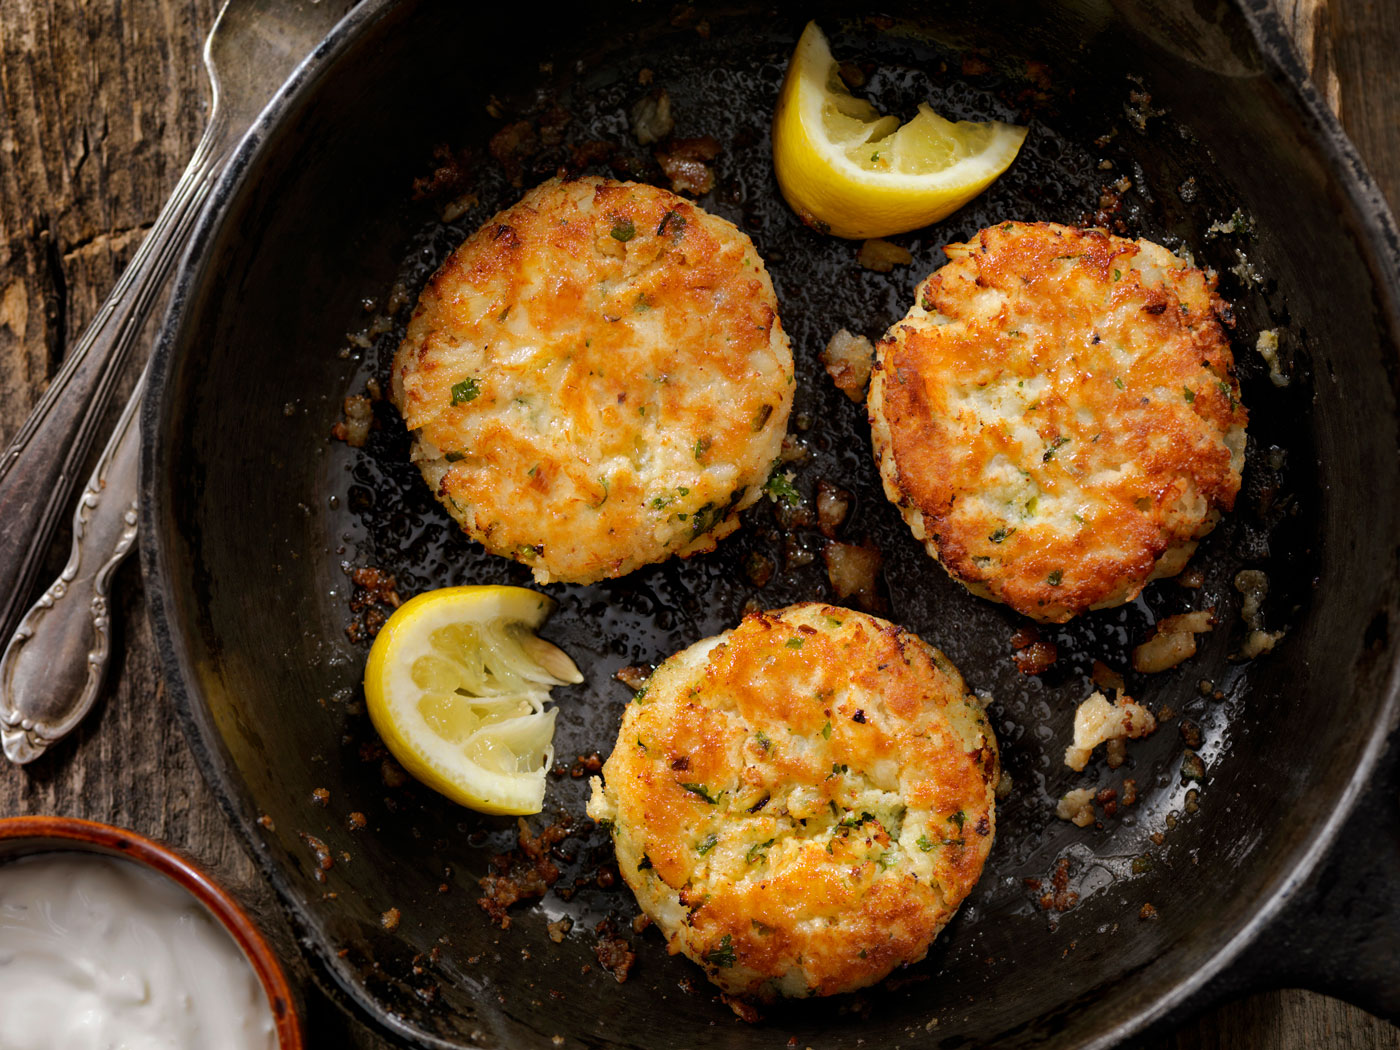 Three crab cakes frying in a skillet with sliced lemon.